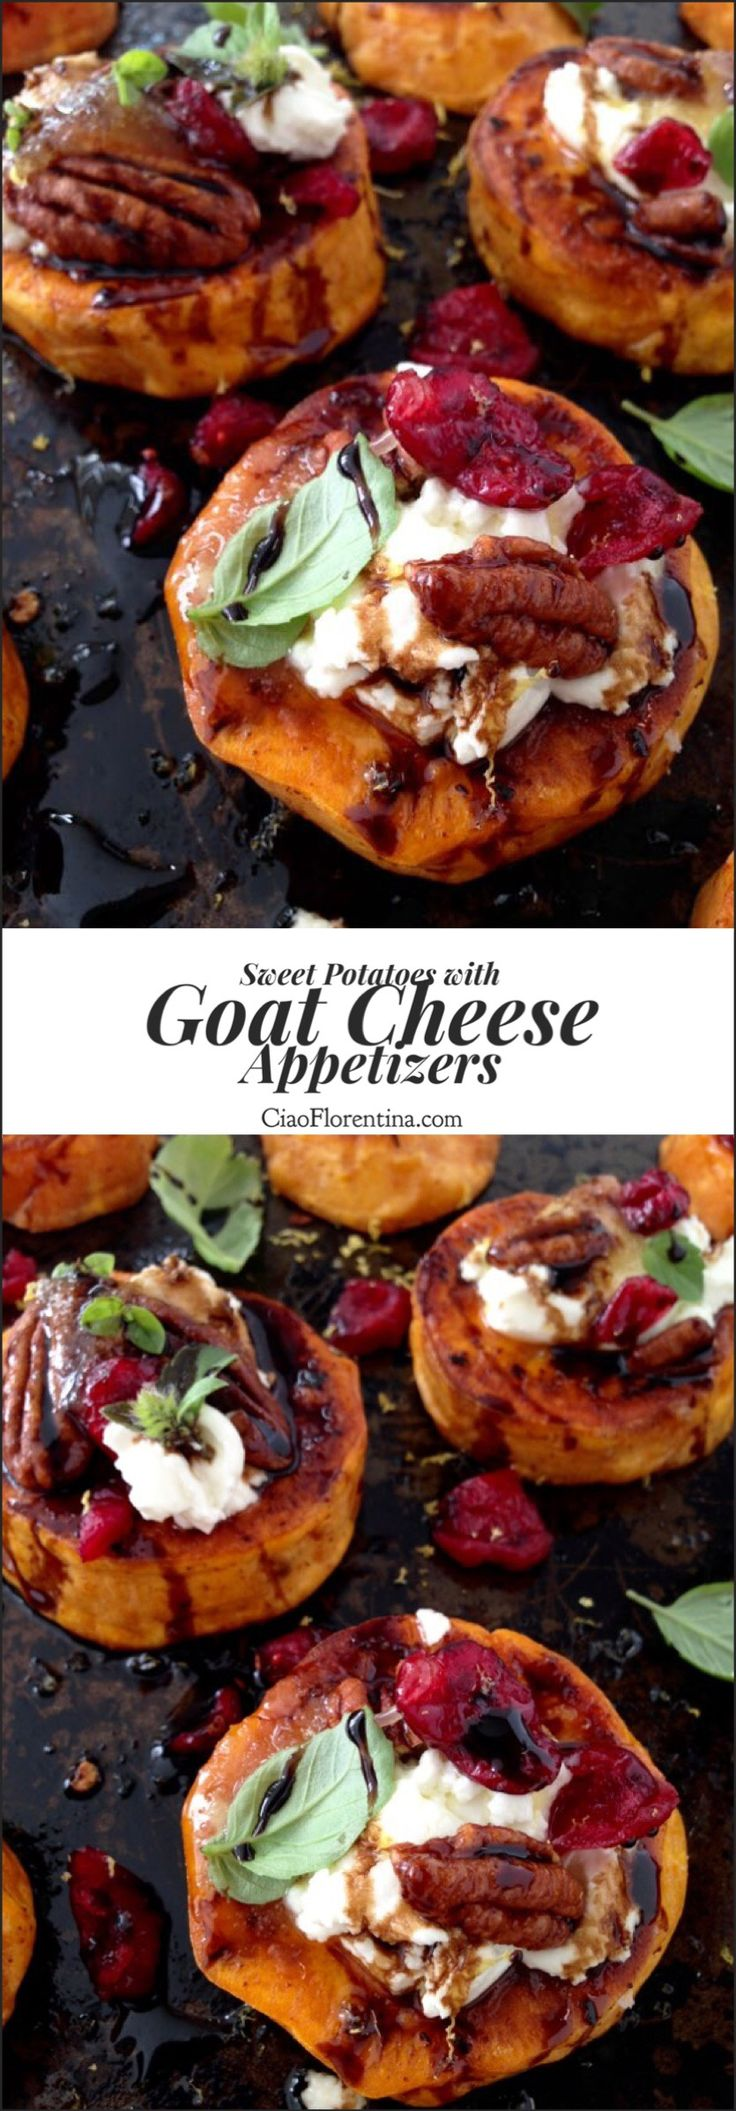 Sweet Potato Goat Cheese Appetizers with Candied Walnuts and Balsamic Glaze | CiaoFlorentina.com @CiaoFlorentina